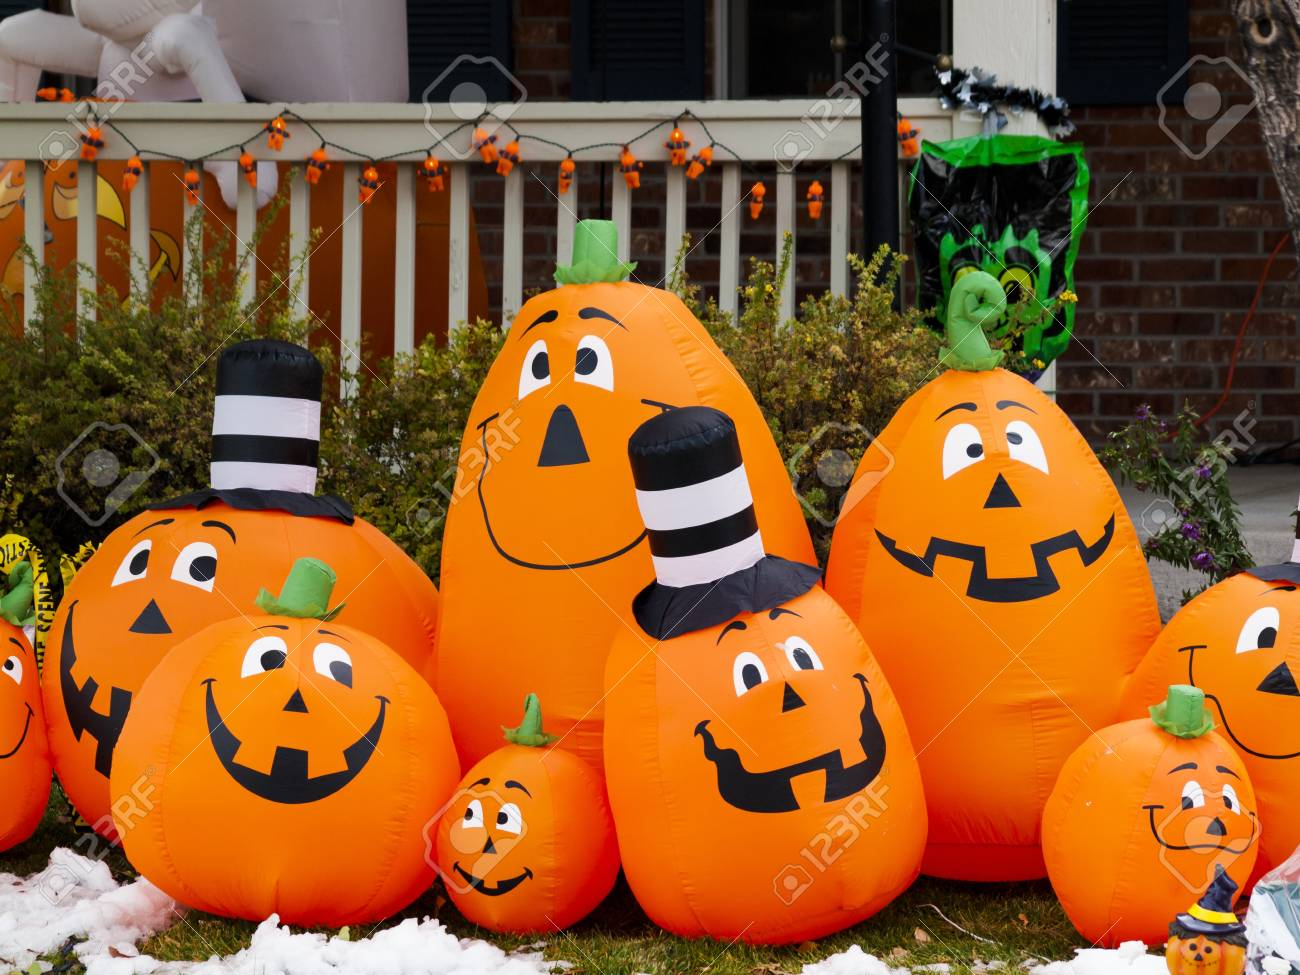 Hallo Halloween Decoraties : Halloween decorations in the front yard of a house on halloween